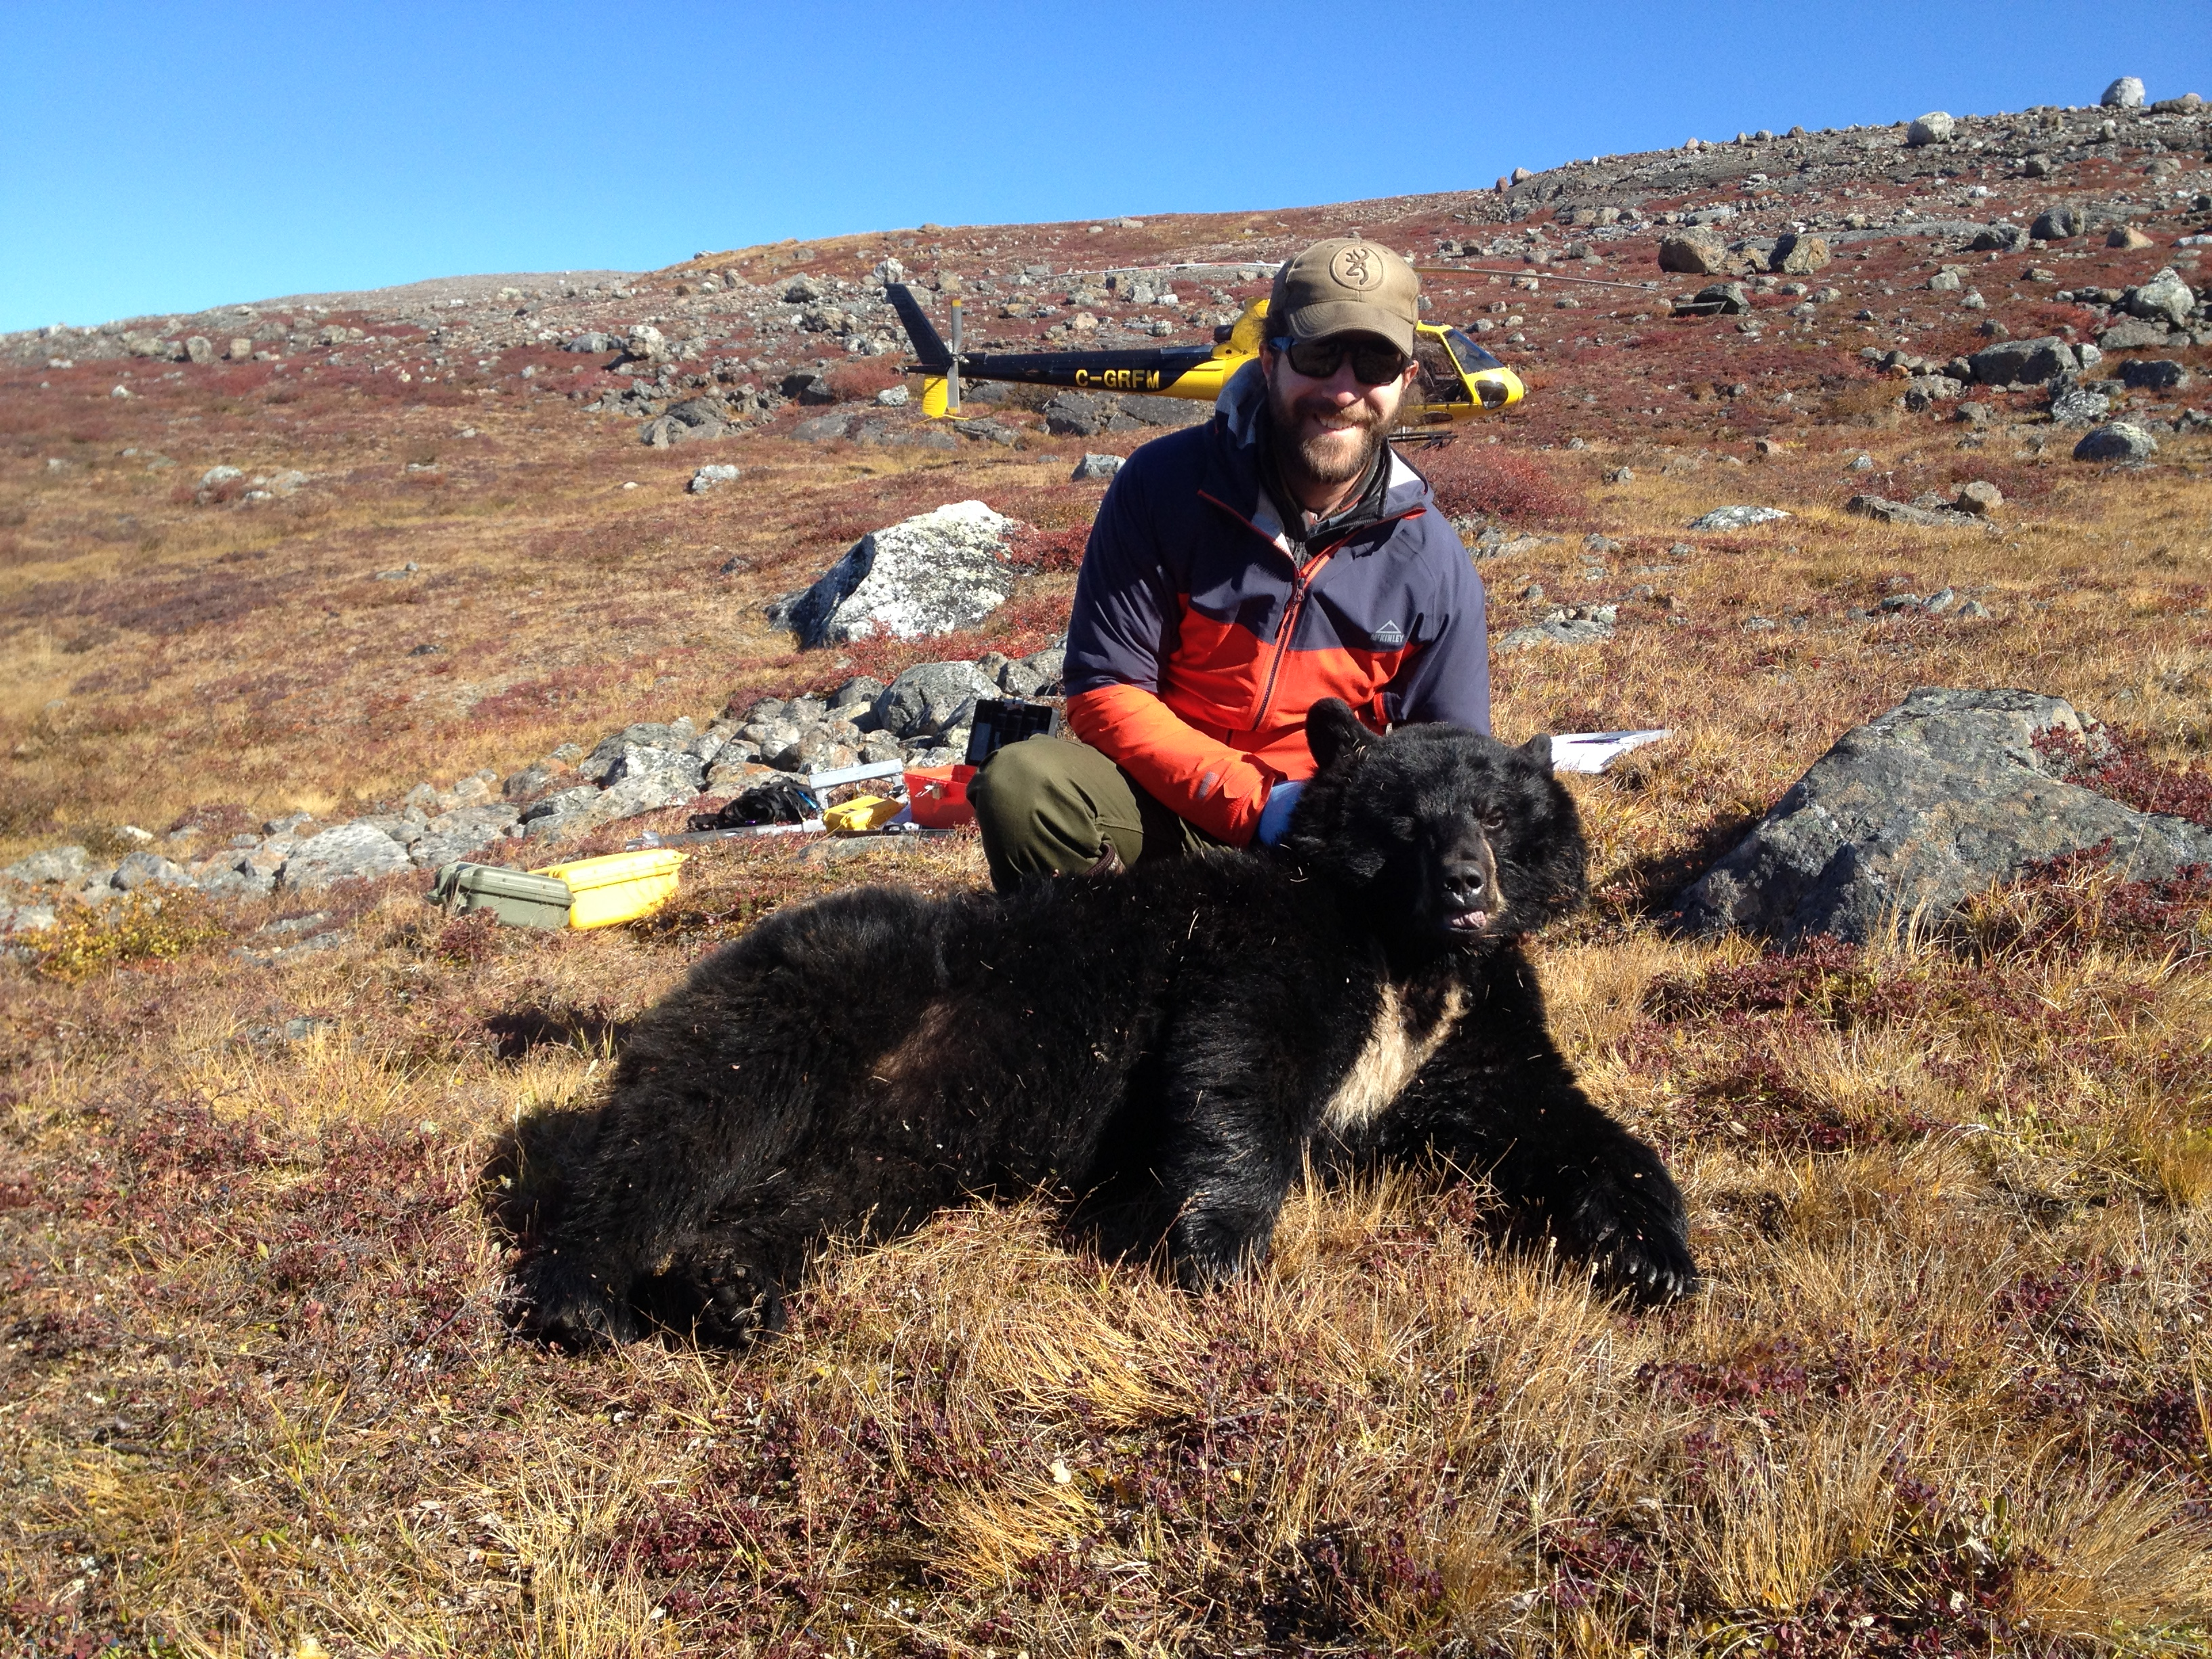 Capture d'un ours noir au Nunavik. Photo: Michaël Bonin